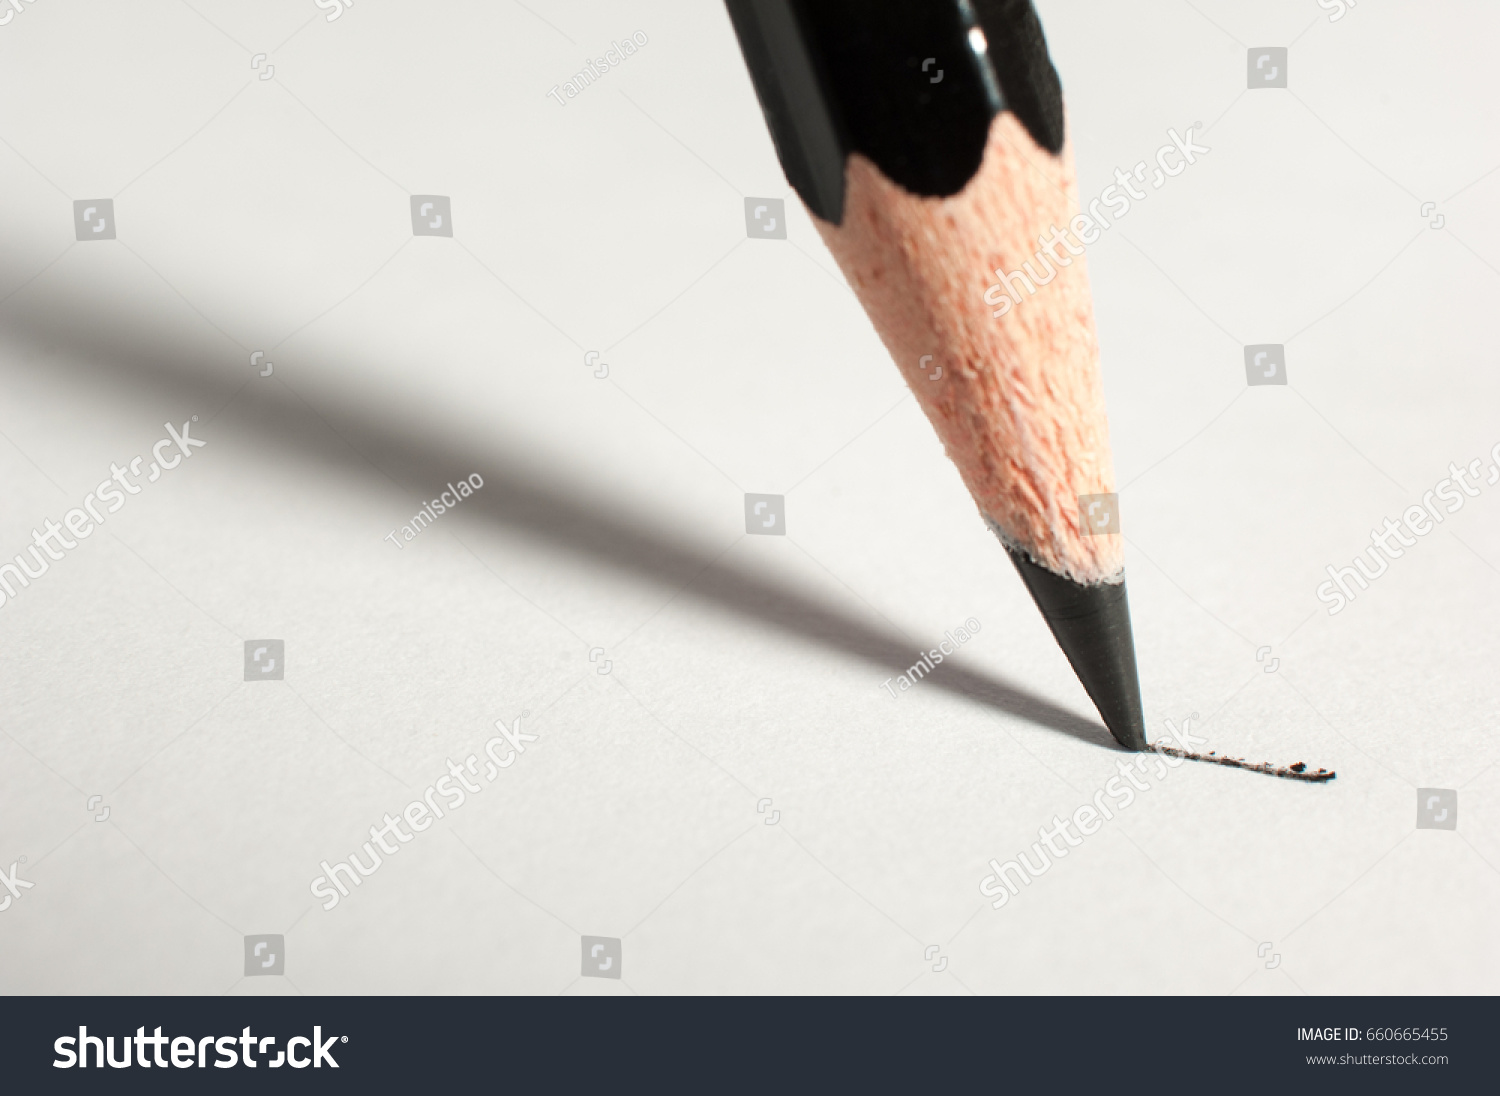 close pencil writing on paper stock photo (edit now) 660665455